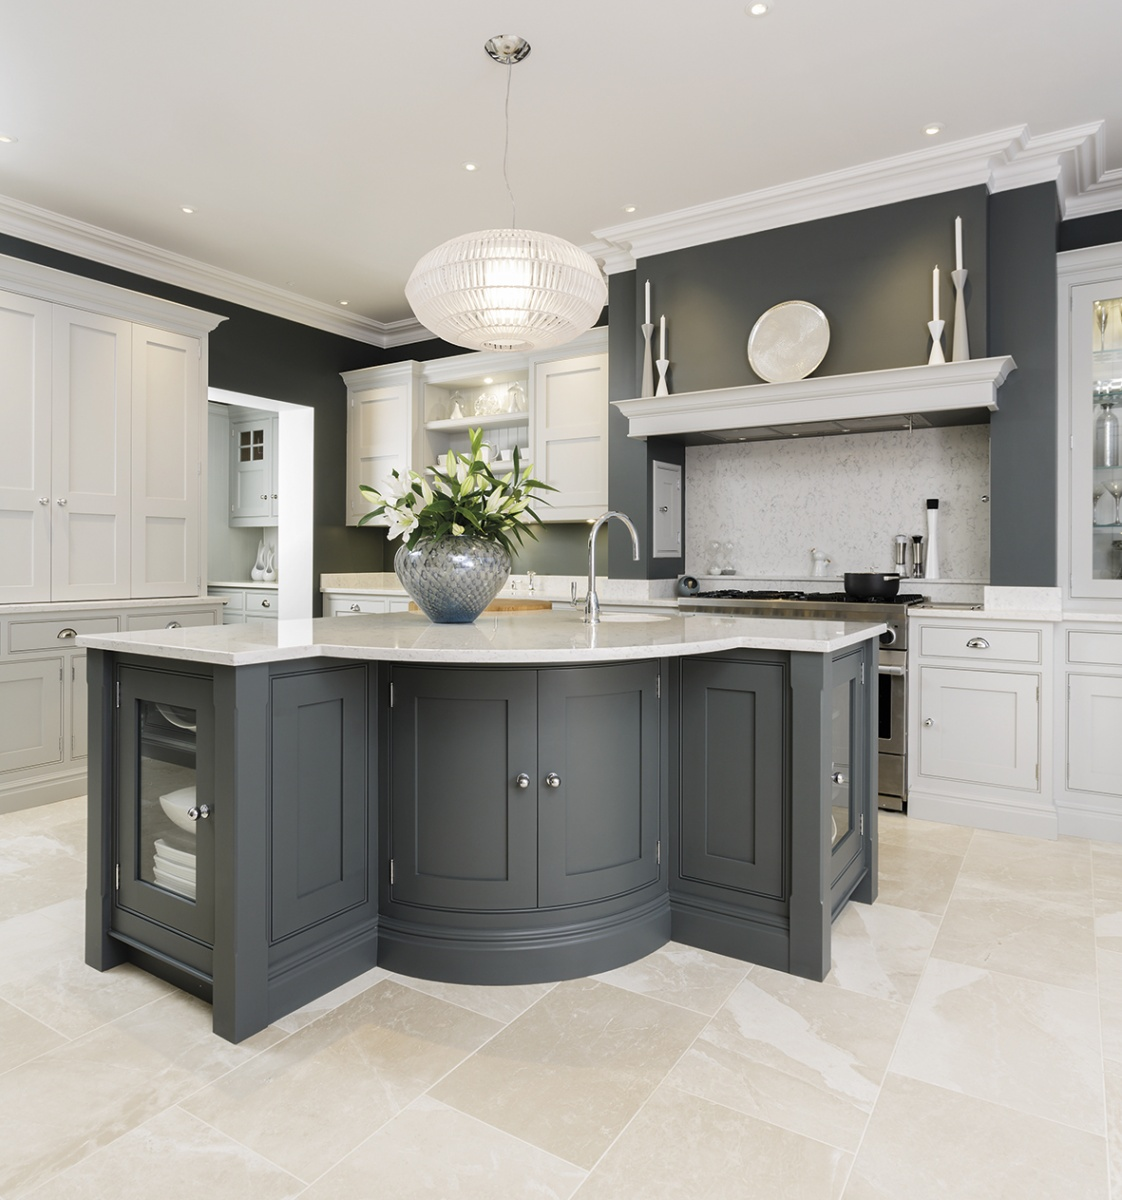 Bespoke kitchens for Kitchen for kitchen